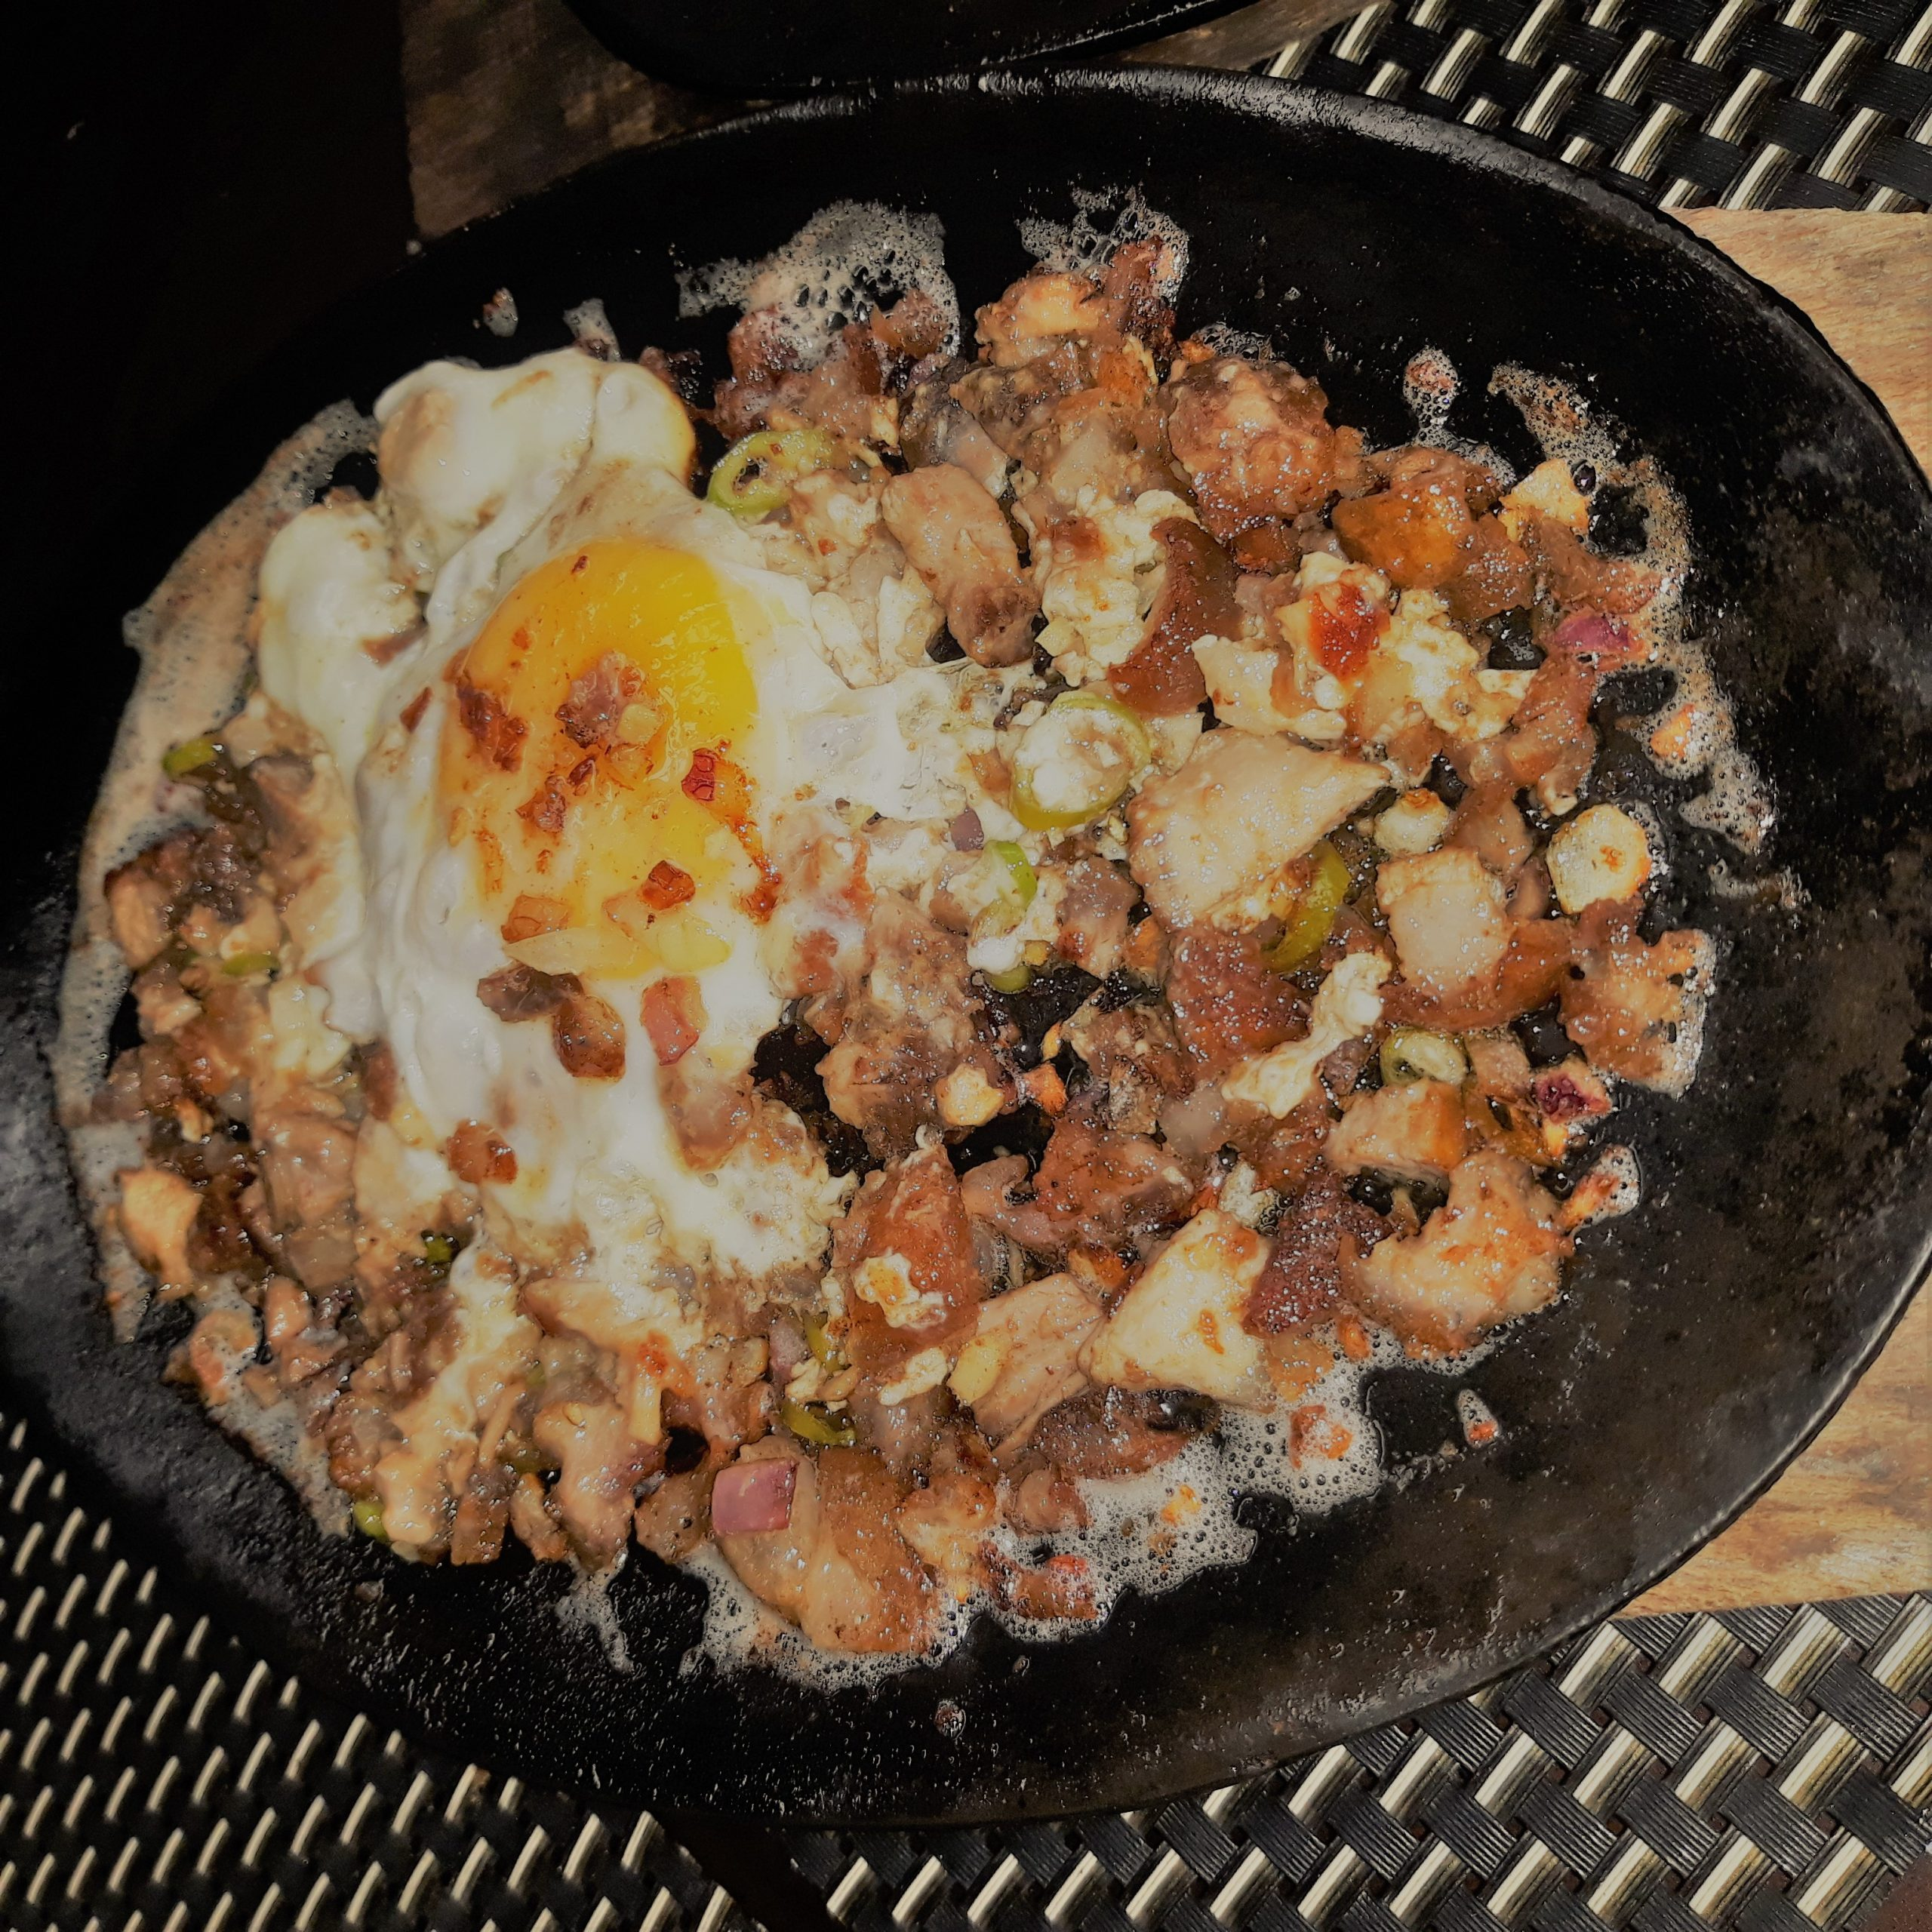 Sizzling sisig with an egg on top.